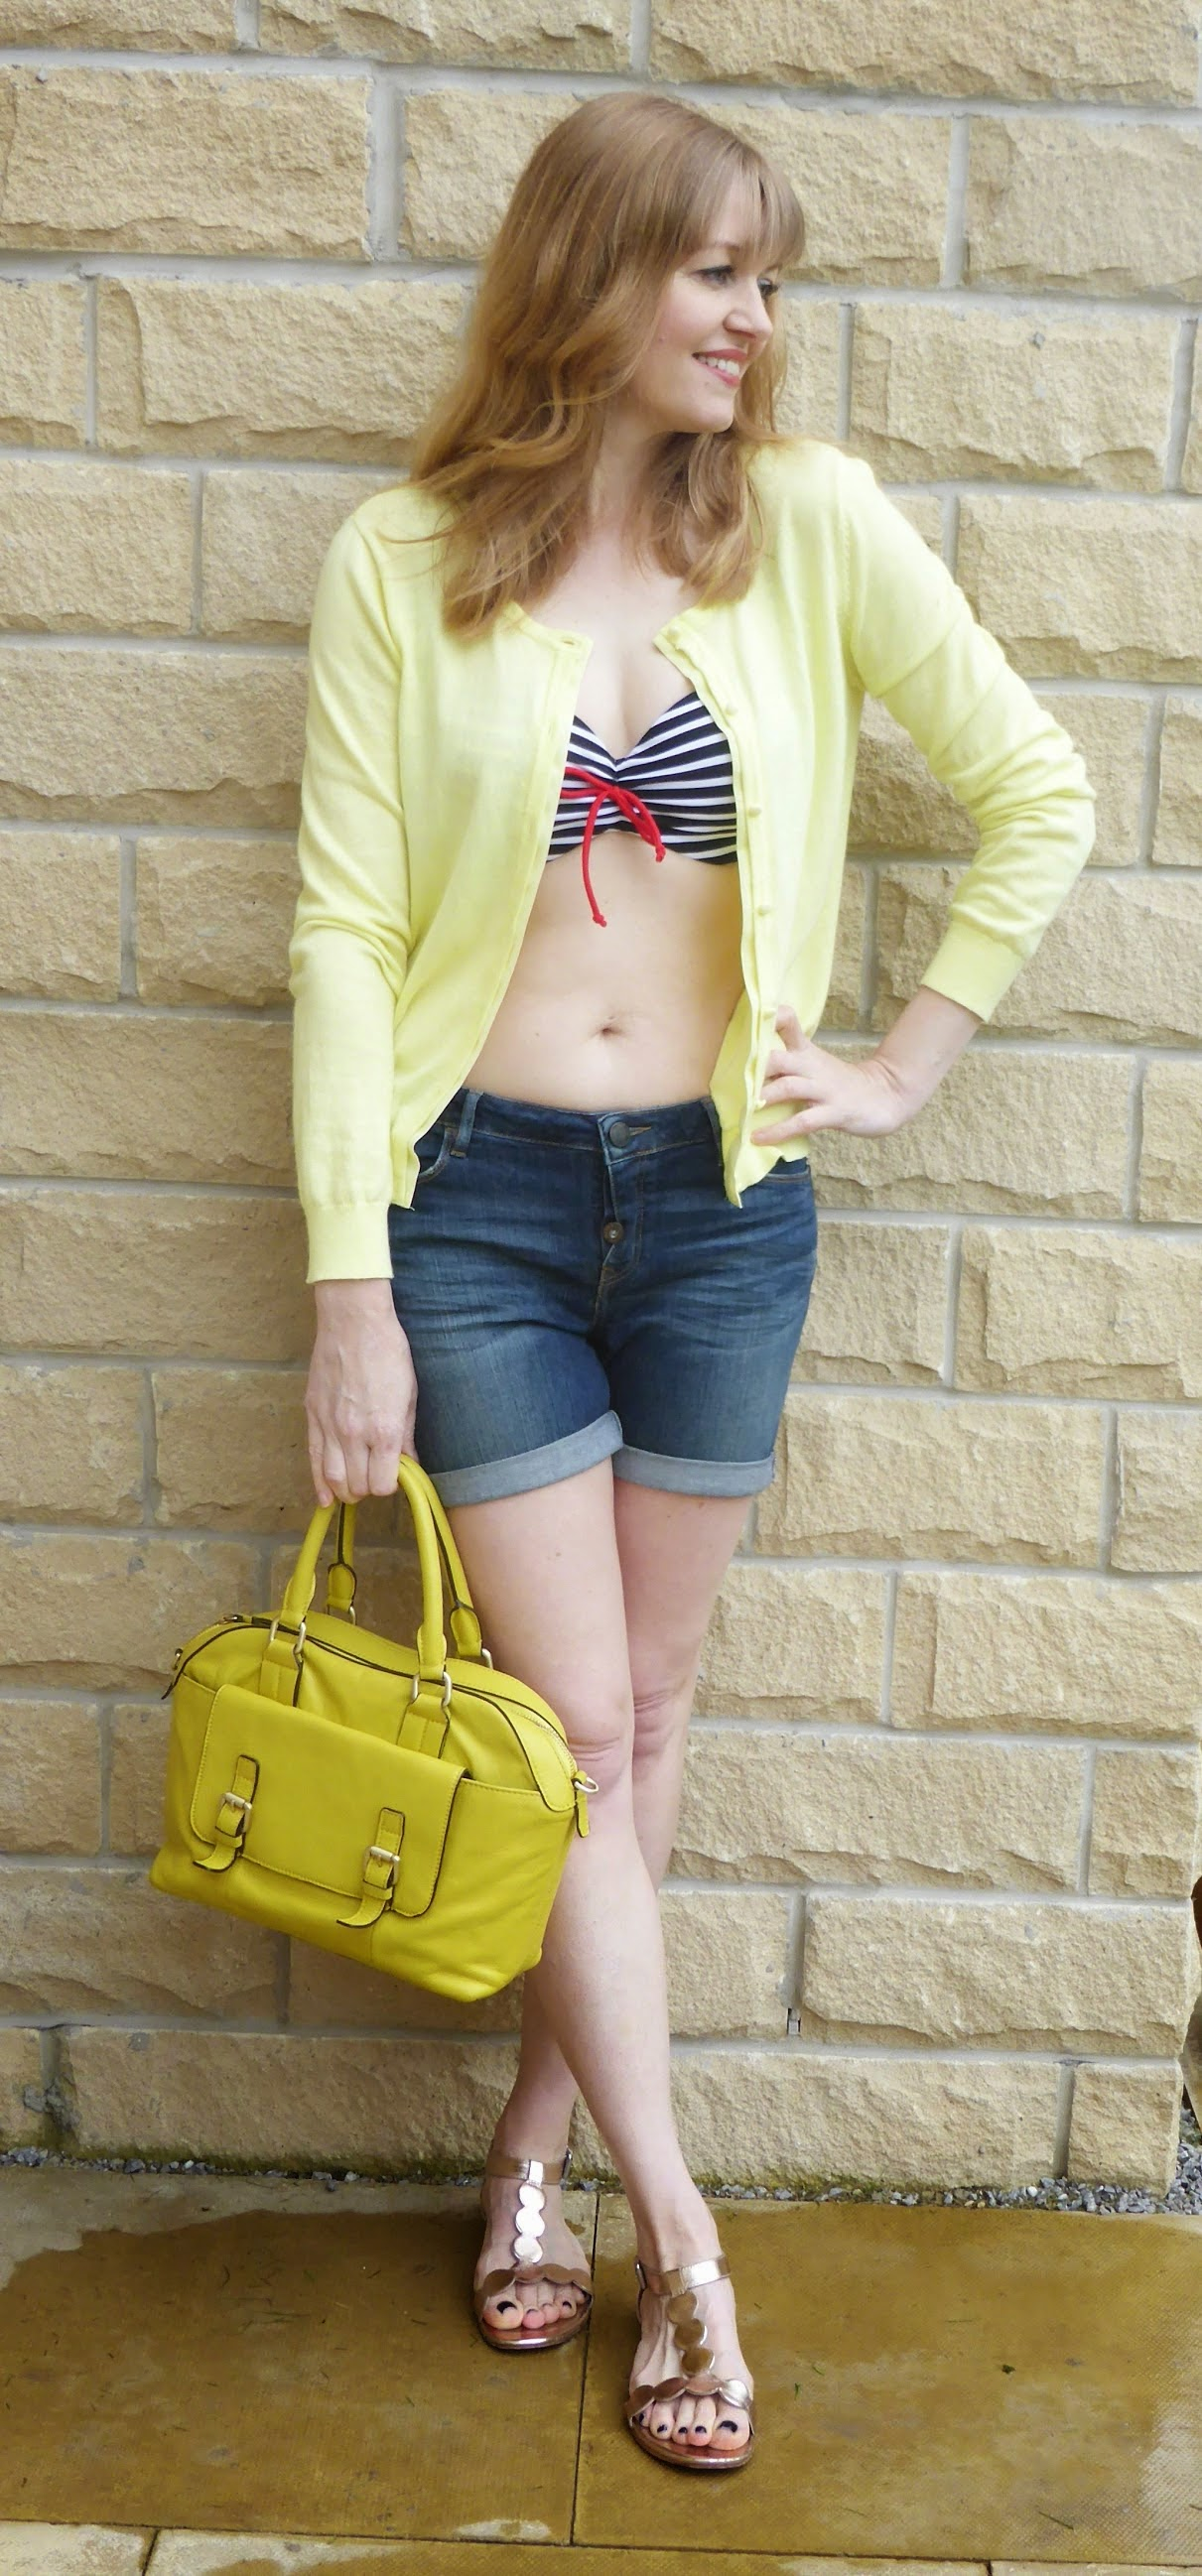 Over 40 fashion blogger What Lizzy Loves wearing navy and white bikini top with denim shorts and lemon yellow cardigan. How to wear a bikini over 40. Bikini for over 40s. Can you wear a bikini over the age of 40. How to wear a bikini when over 40